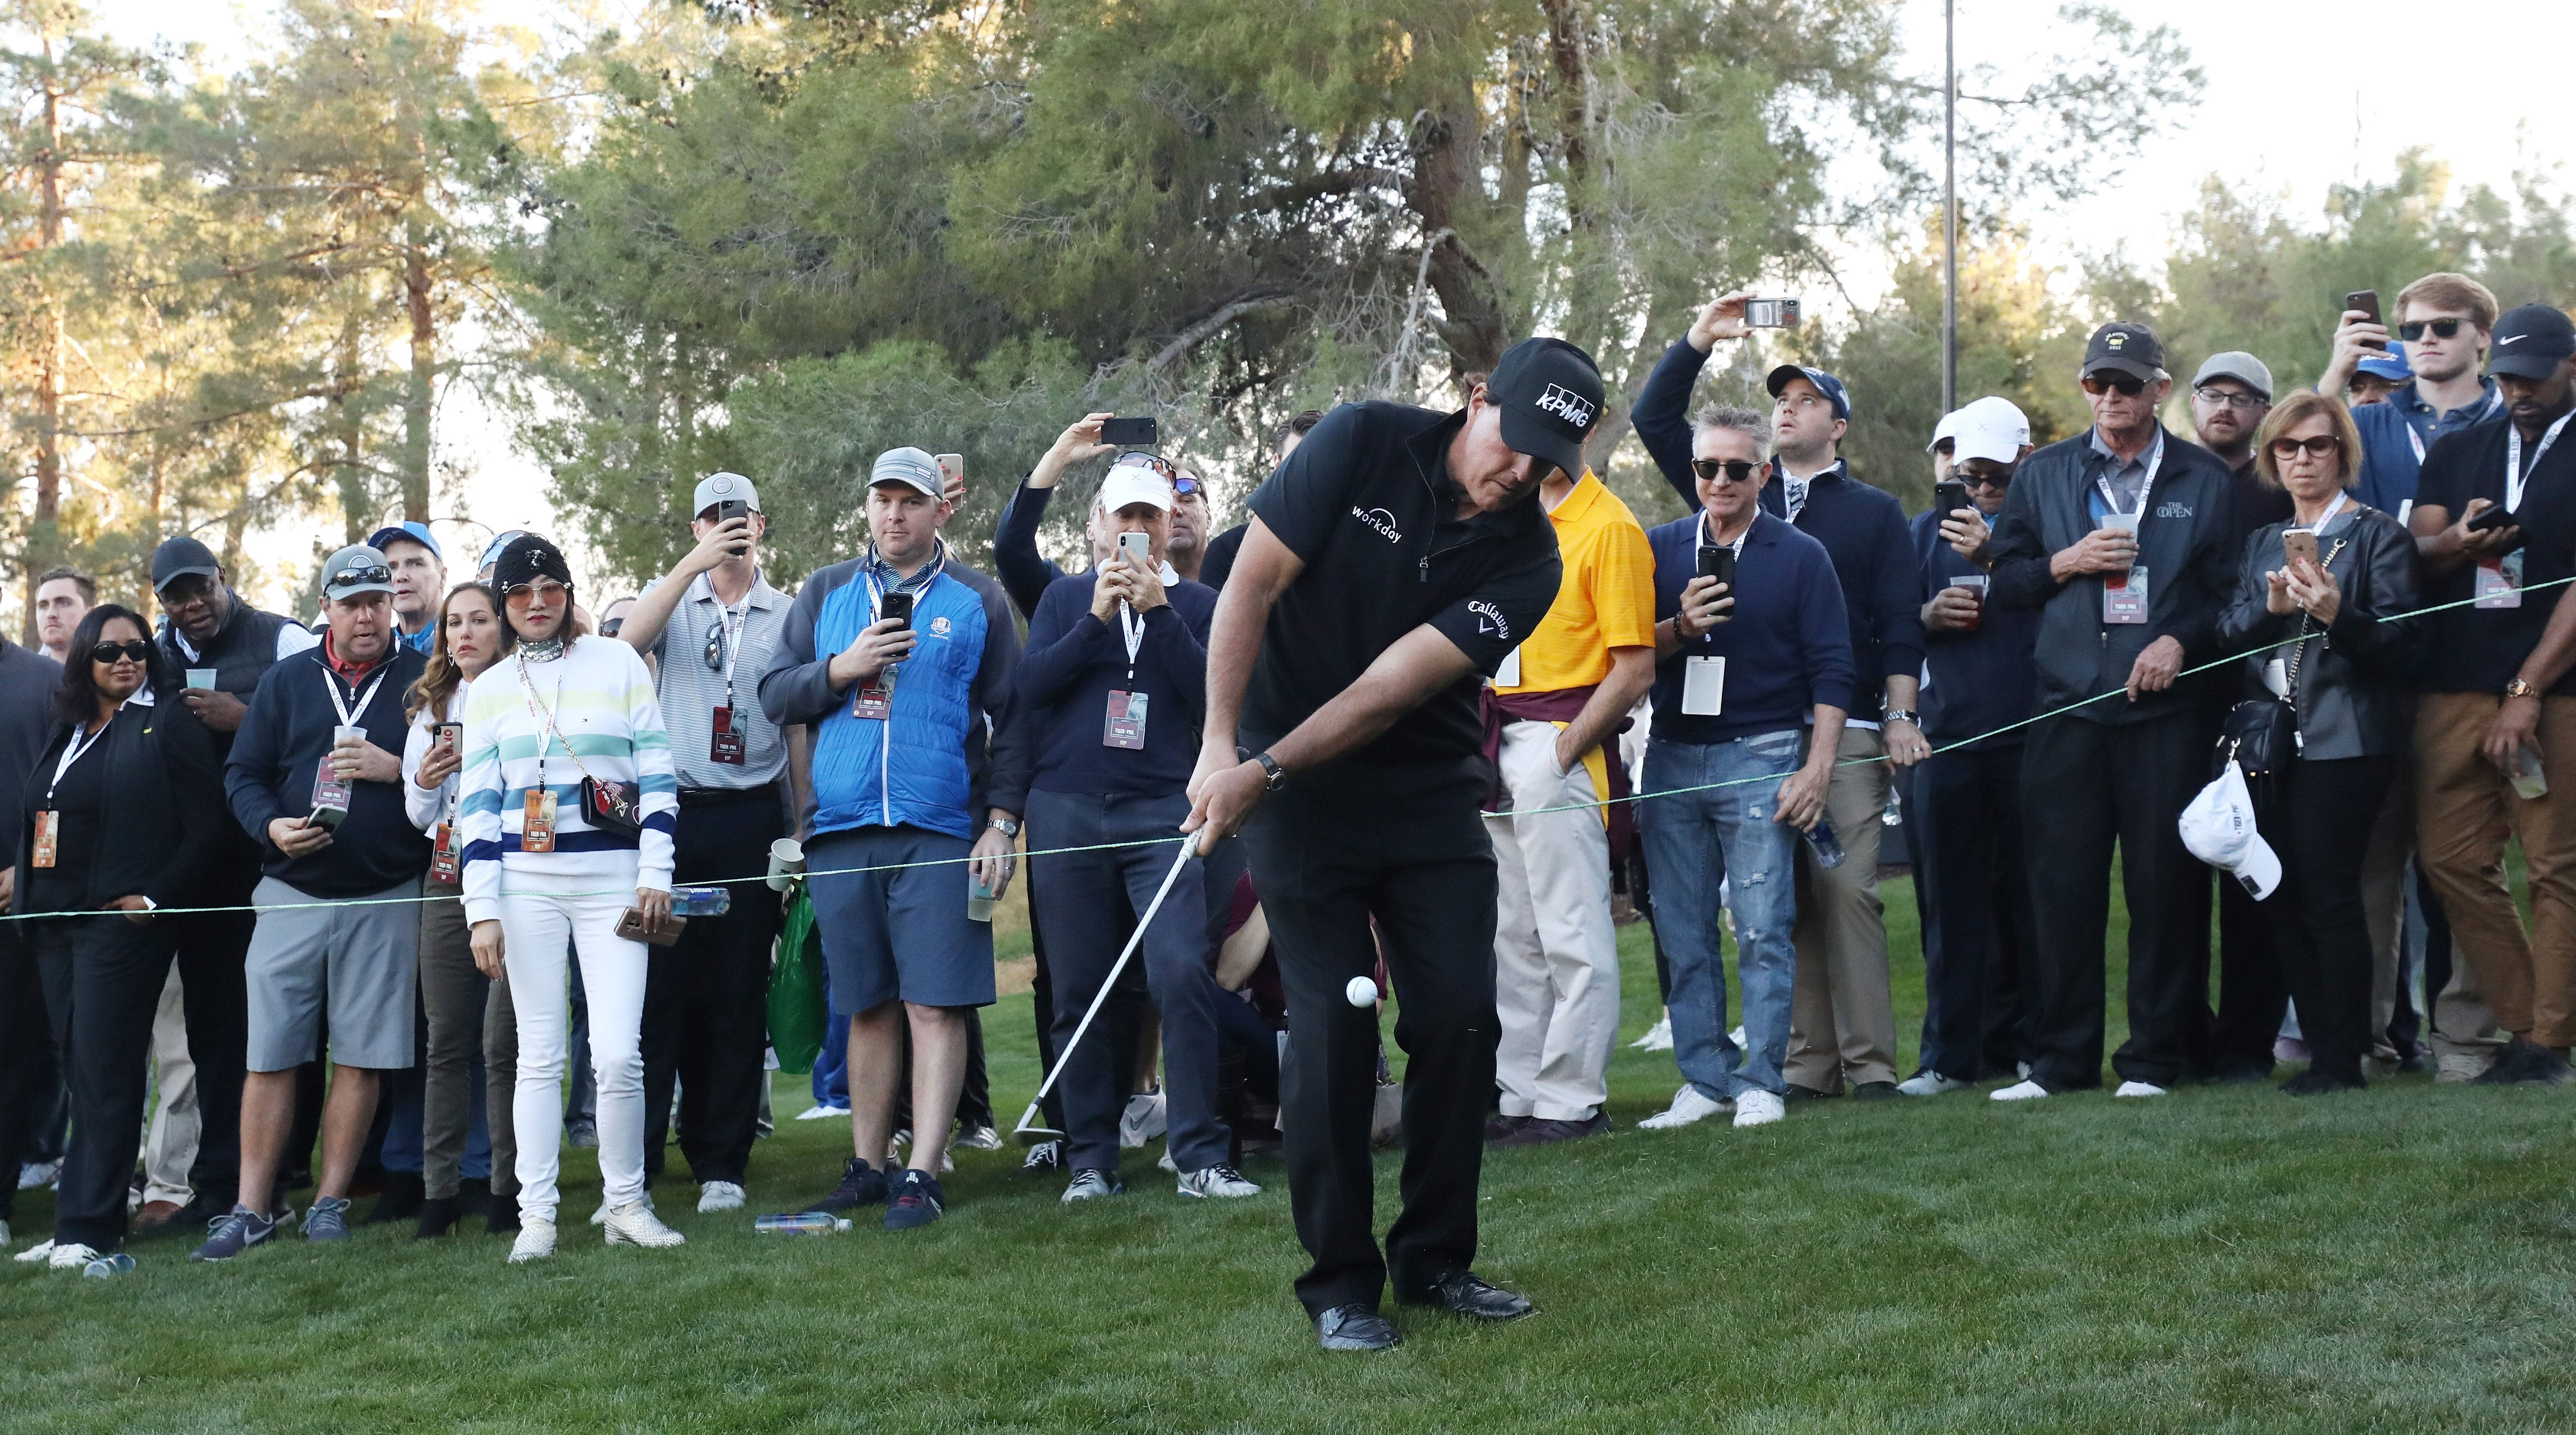 Phil Mickelson eventually prevailed in the inaugural Match.